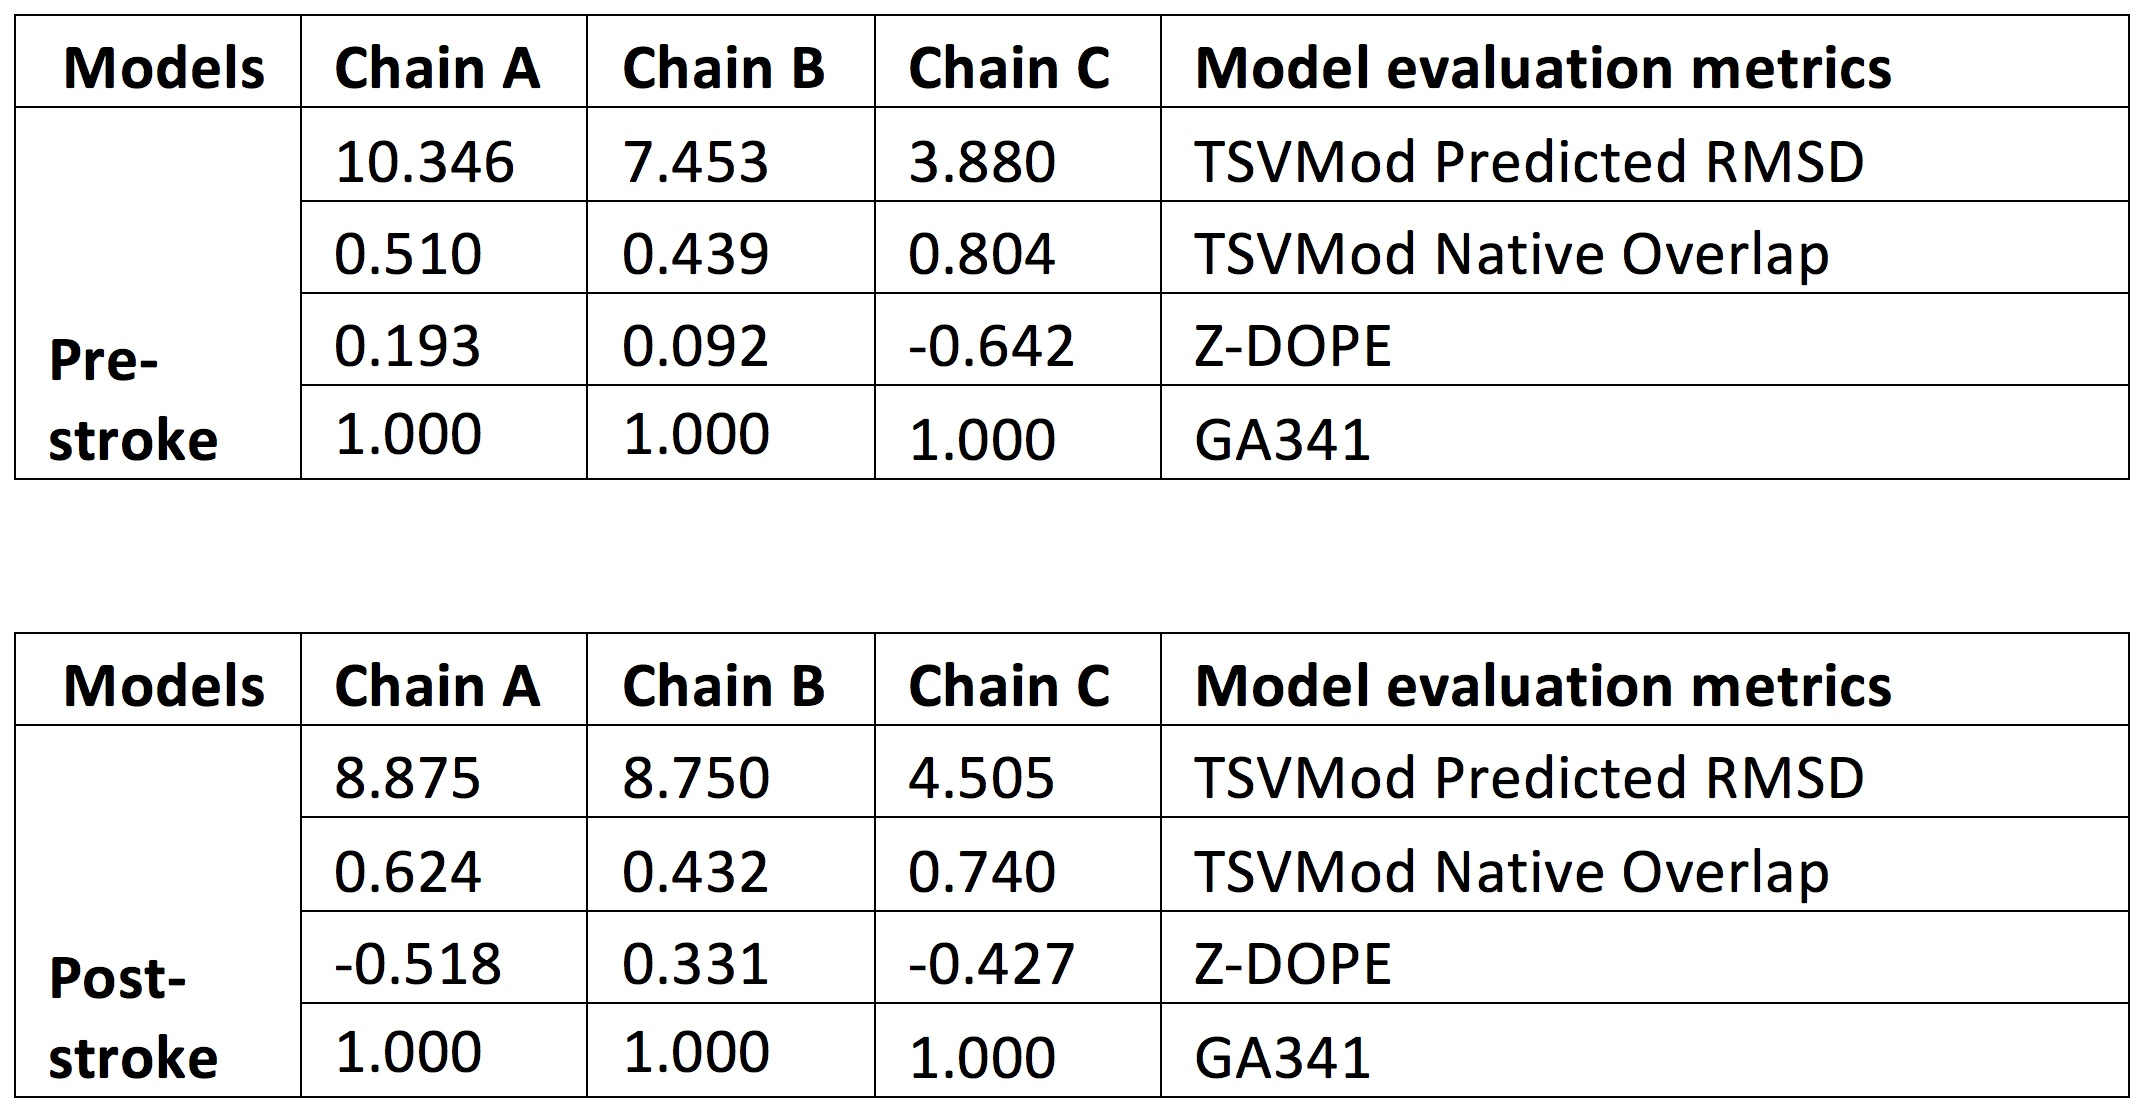 The models were evaluated using ModEval [1] methodology. Evaluation metrics are tabulated for the two models that were developed. The TSVMod predicted Cα root-mean-square deviation (RMSD) shows the Cα-RMSD of the model from the template structure and predicted native overlap provides the fraction of Cα atoms in the model within 3.5 Å of the corresponding atoms in the template structure after rigid-body superposition [2]. zDOPE is a normalized Discrete Optimized Protein Energy (DOPE), an atomic distance-dependent statistical score. Negative values indicate better models [3]. GA341 model score is derived from residue-level statistical potential that was optimized, including distance-dependent, contact, Phi/Psi dihedral angle, and accessible surface statistical potentials. A value > 0.7 generally indicates a reliable model, defined as ≥ 95% probability of correct fold [4].  1.     Pieper U  et al , ModBase, a database of annotated comparative protein structure models, and associated resources. Nucleic Acids Res (2011).  2.     Eramian  et al , How well can the accuracy of comparative protein structure models be predicted? Protein Sci (2008).  3.     Shen MY  et al , Statistical potential for assessment and prediction of protein structures. Protein Sci (2006)  4.     Melo F  et al,  Statistical potentials for fold assessment. Protein Sci (2002).